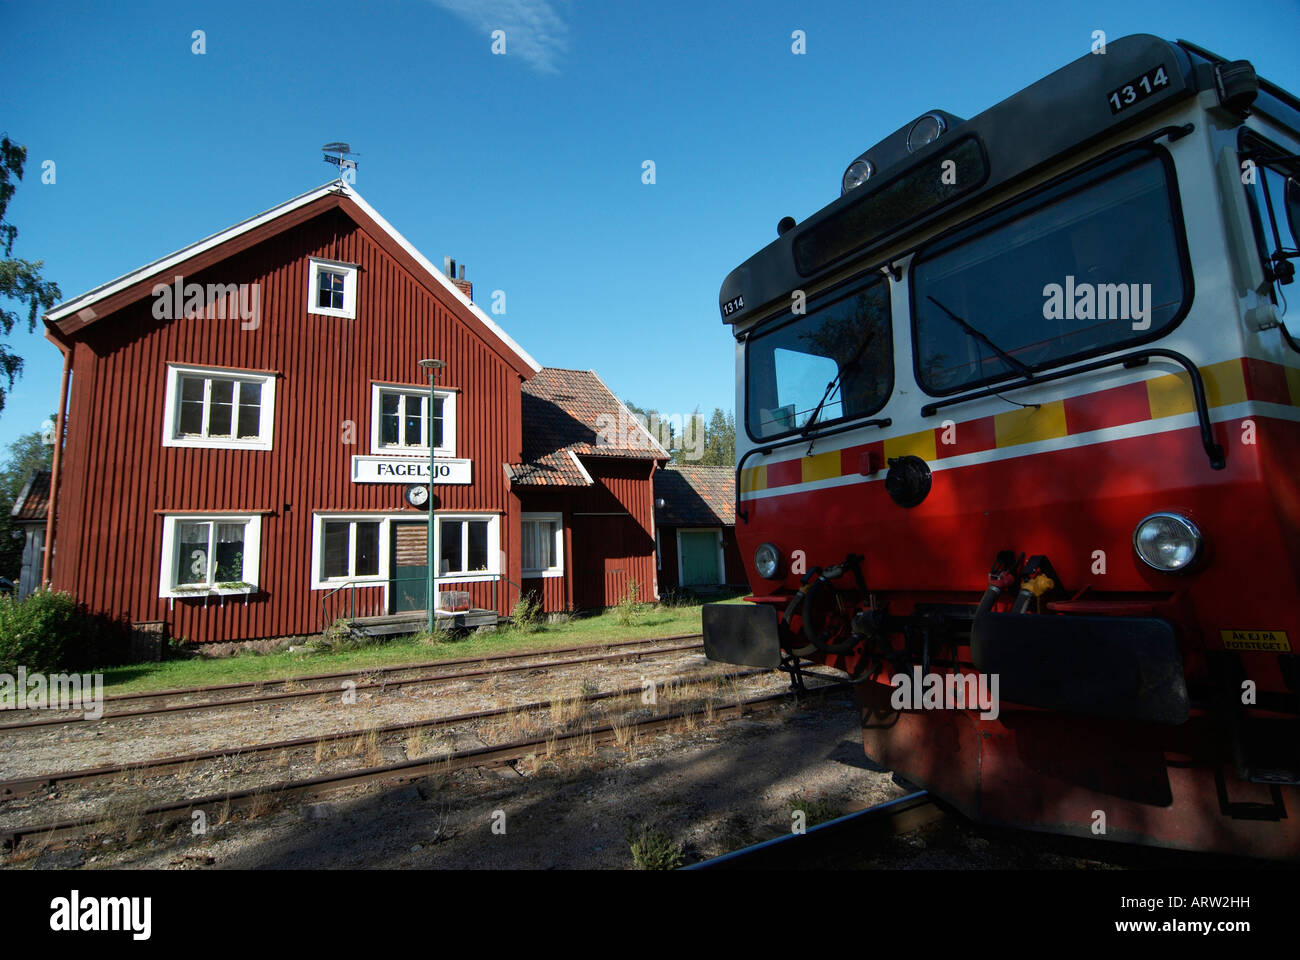 A train of the Swedish Inland Railway at the station of Fagelsjo Dalarna Sweden August 2007 - Stock Image